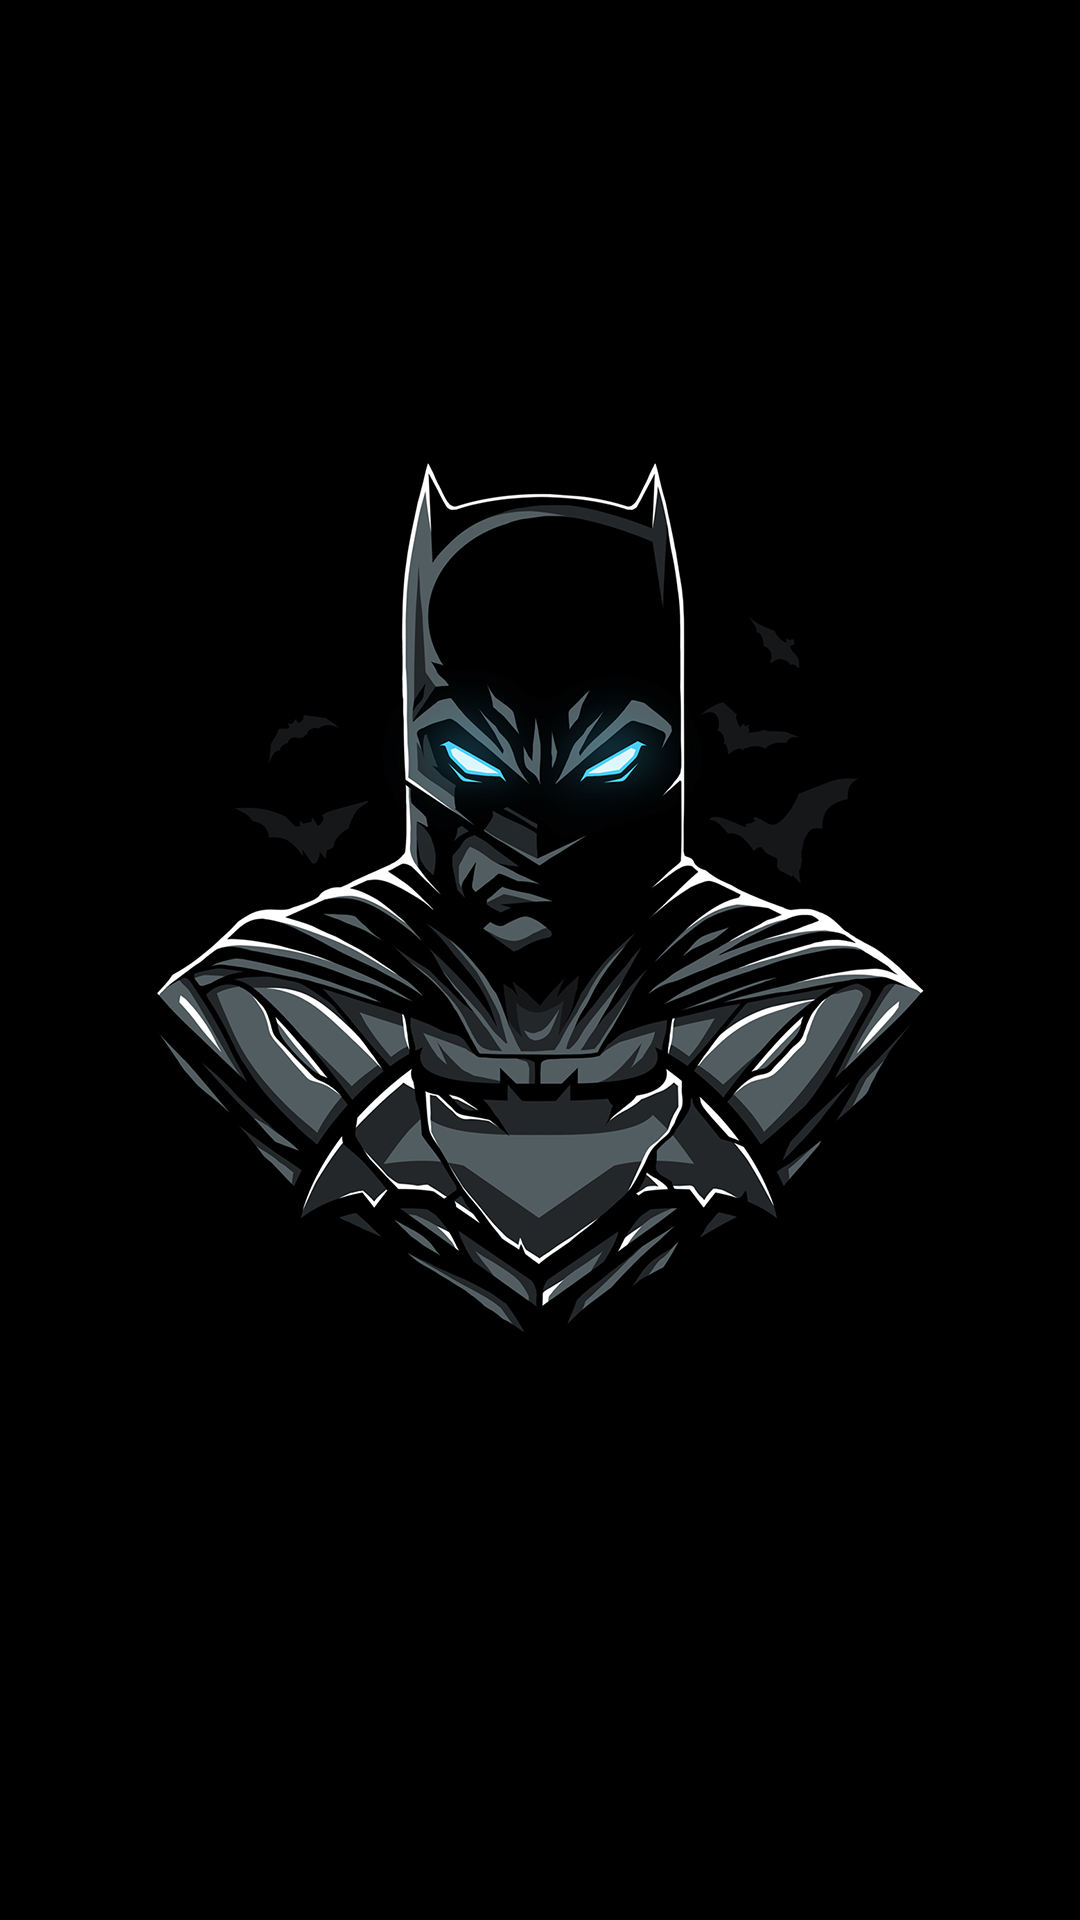 Amoled Bat Investified Is A Blog For People Passionate About